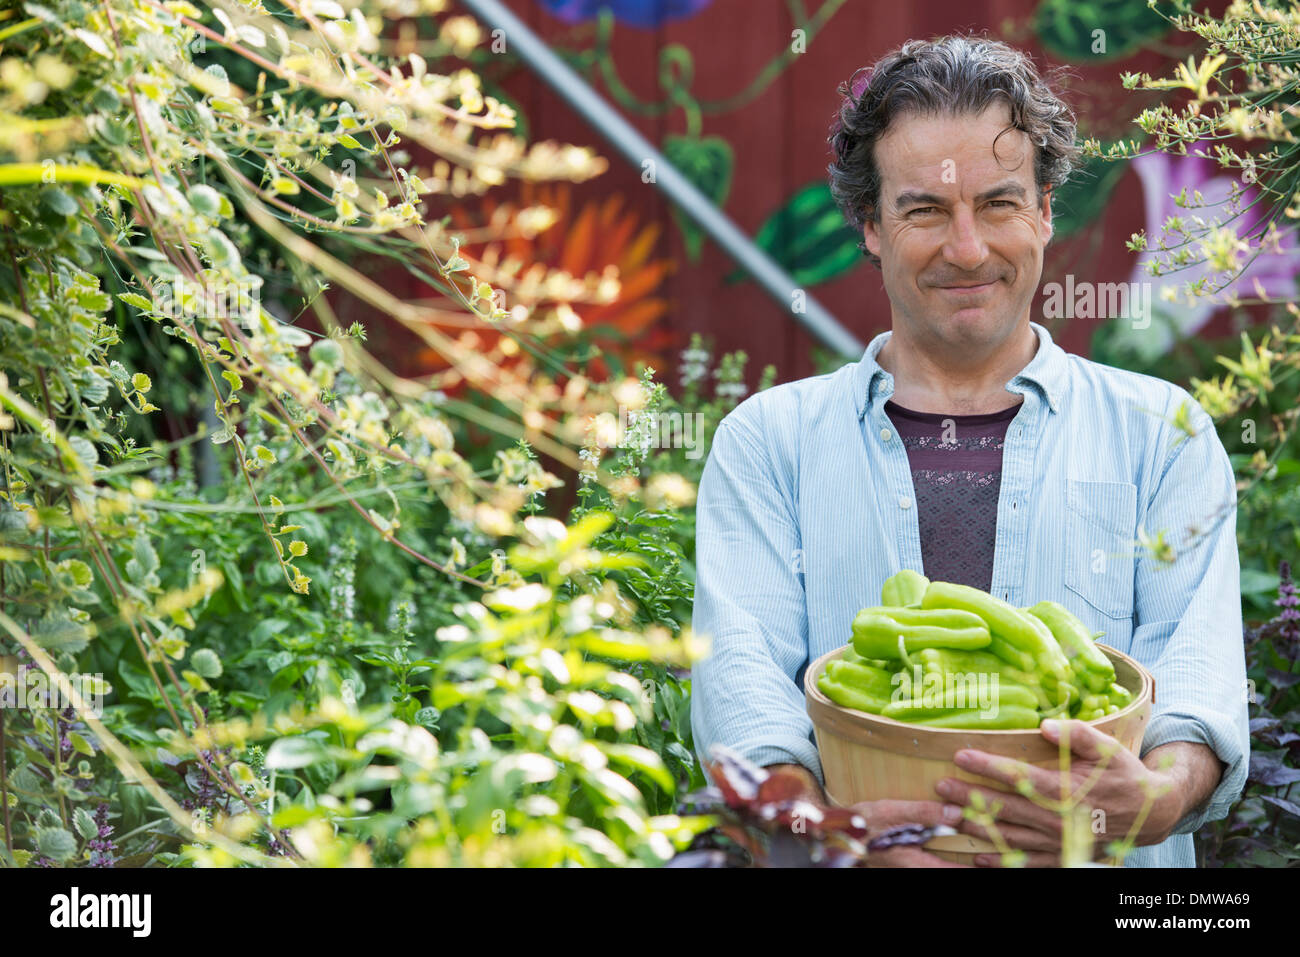 Summer on an organic farm. A  man holding a basket of fresh picked vegetables. - Stock Image